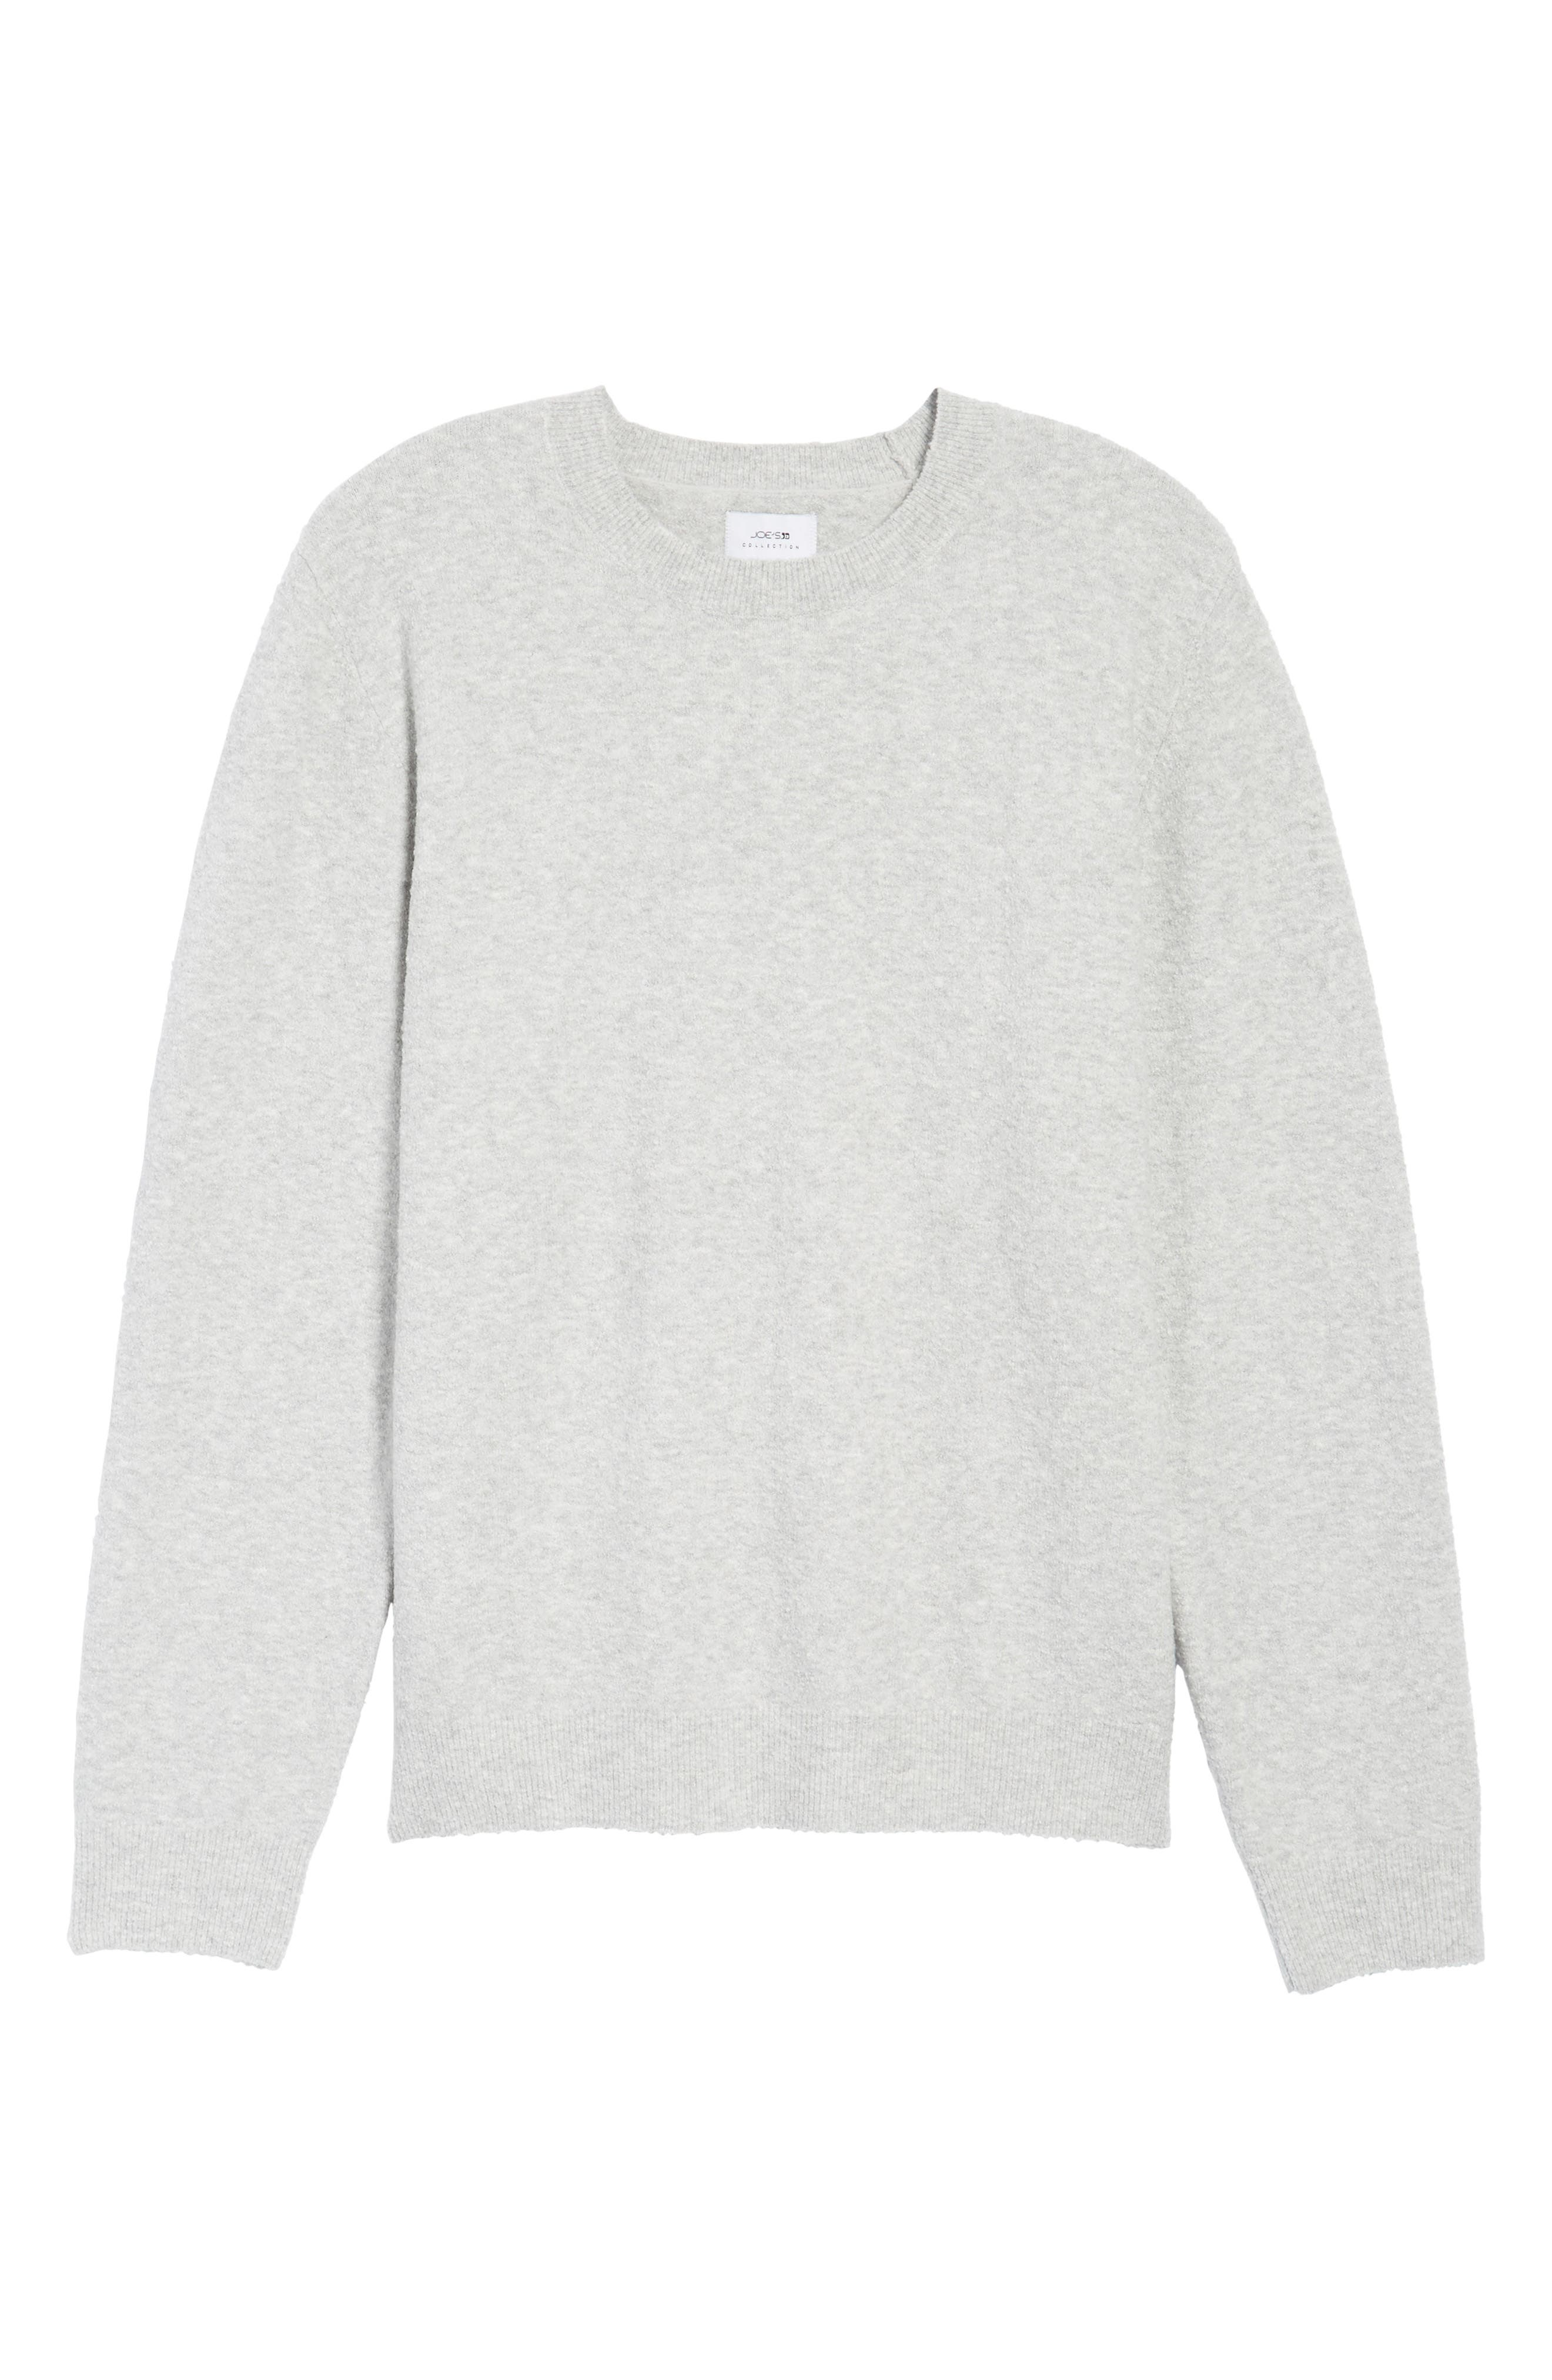 Nathaniel Classic Fit Sweater,                             Alternate thumbnail 6, color,                             Lunar Surface